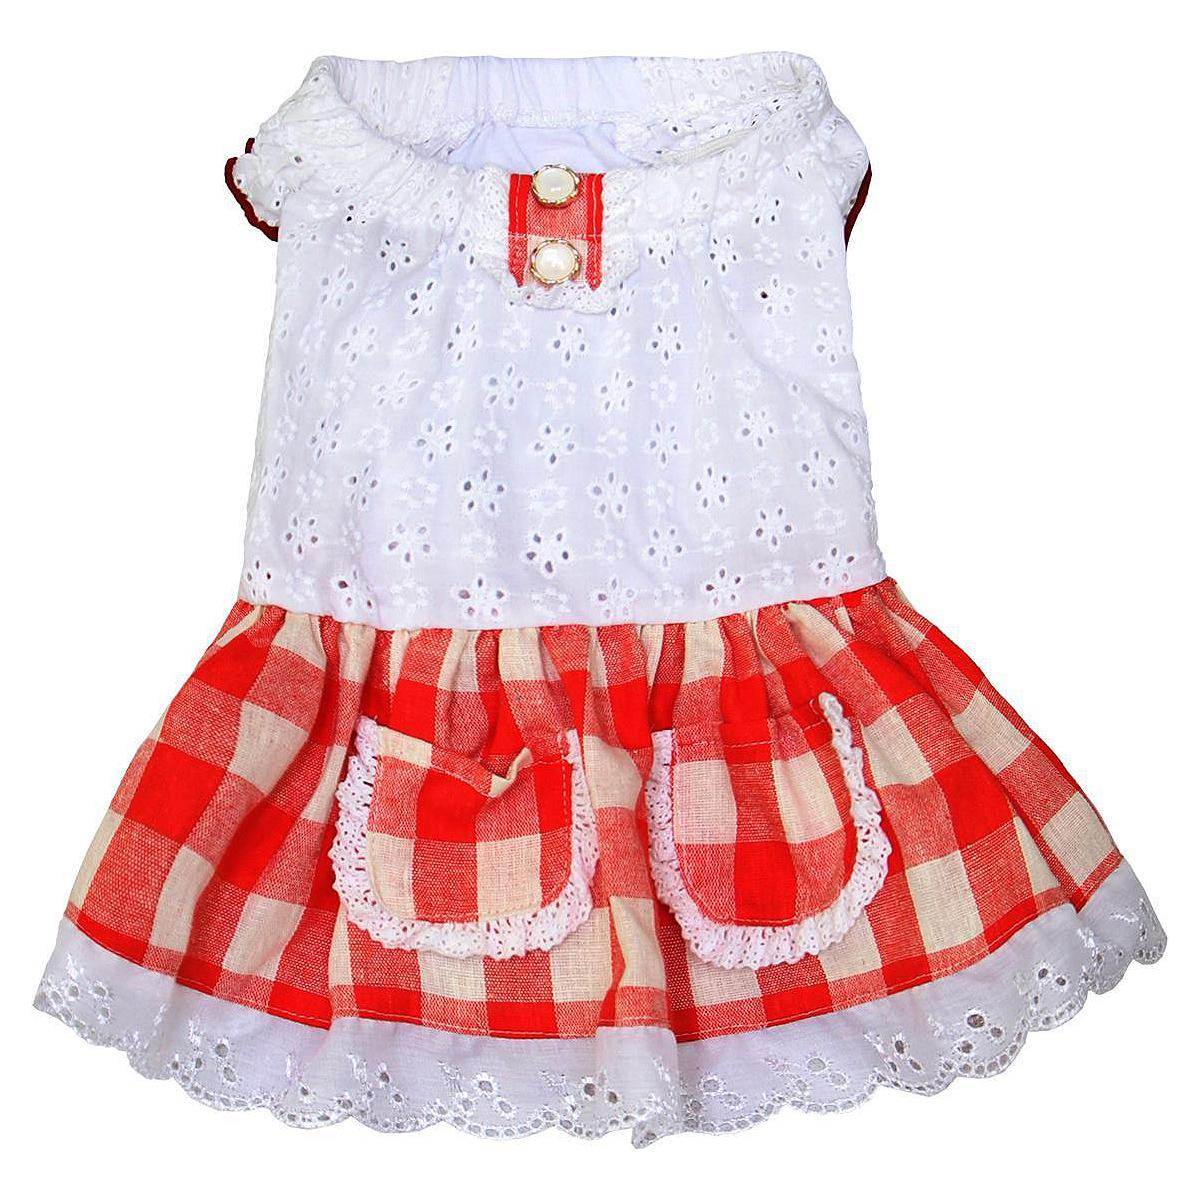 Gingham Country Dog Dress by Dobaz - Red